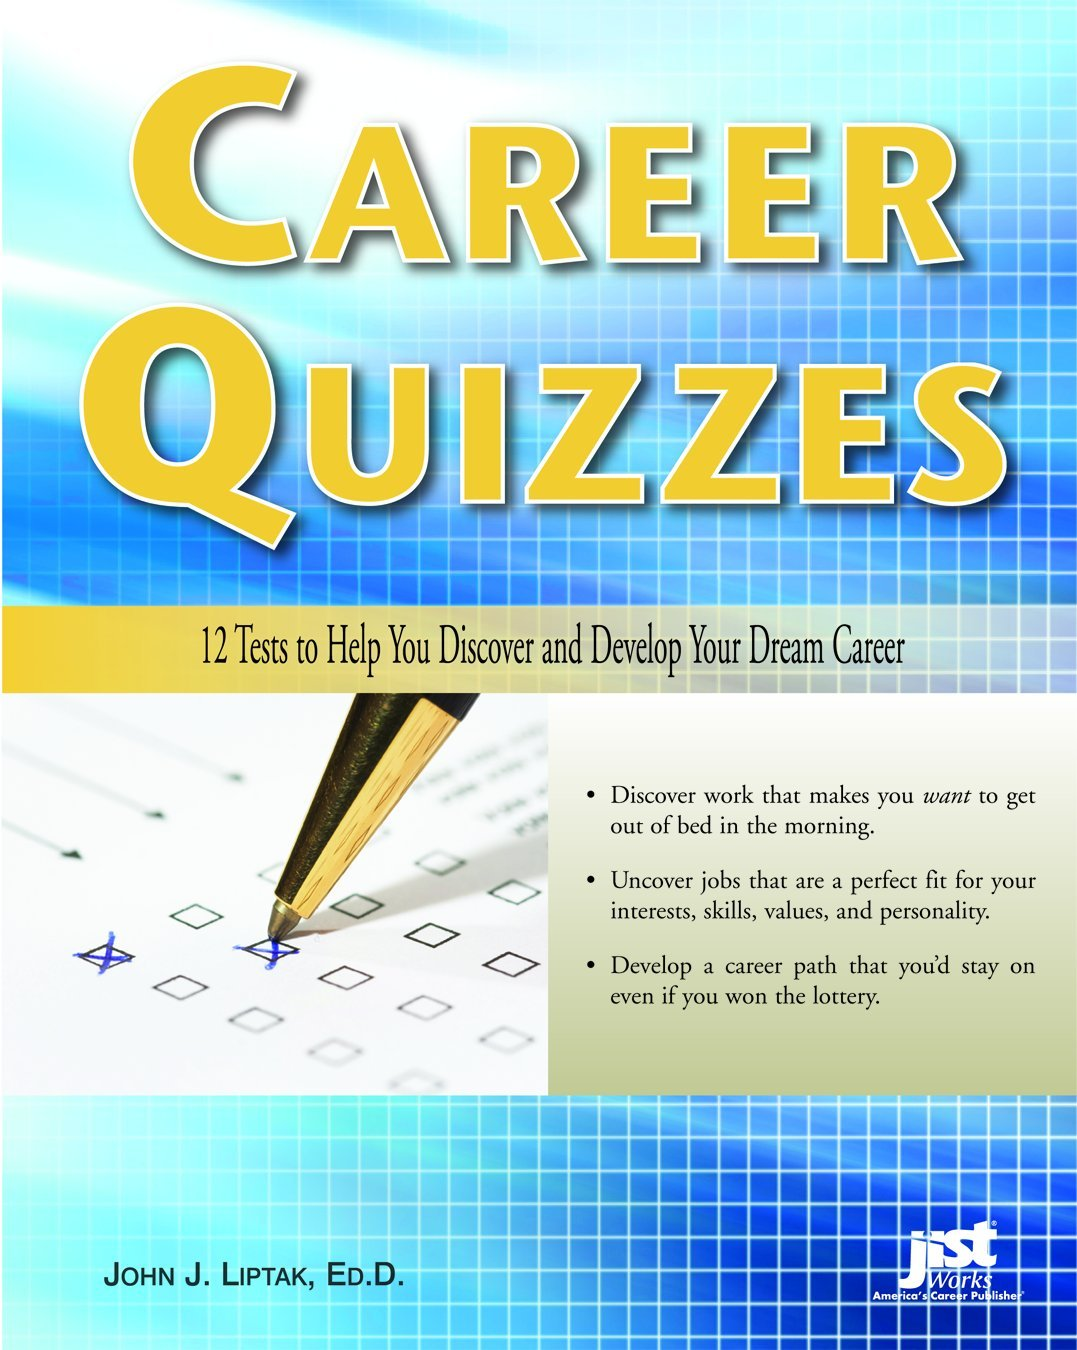 Career Quizzes: 12 Tests to Help You Discover and Develop